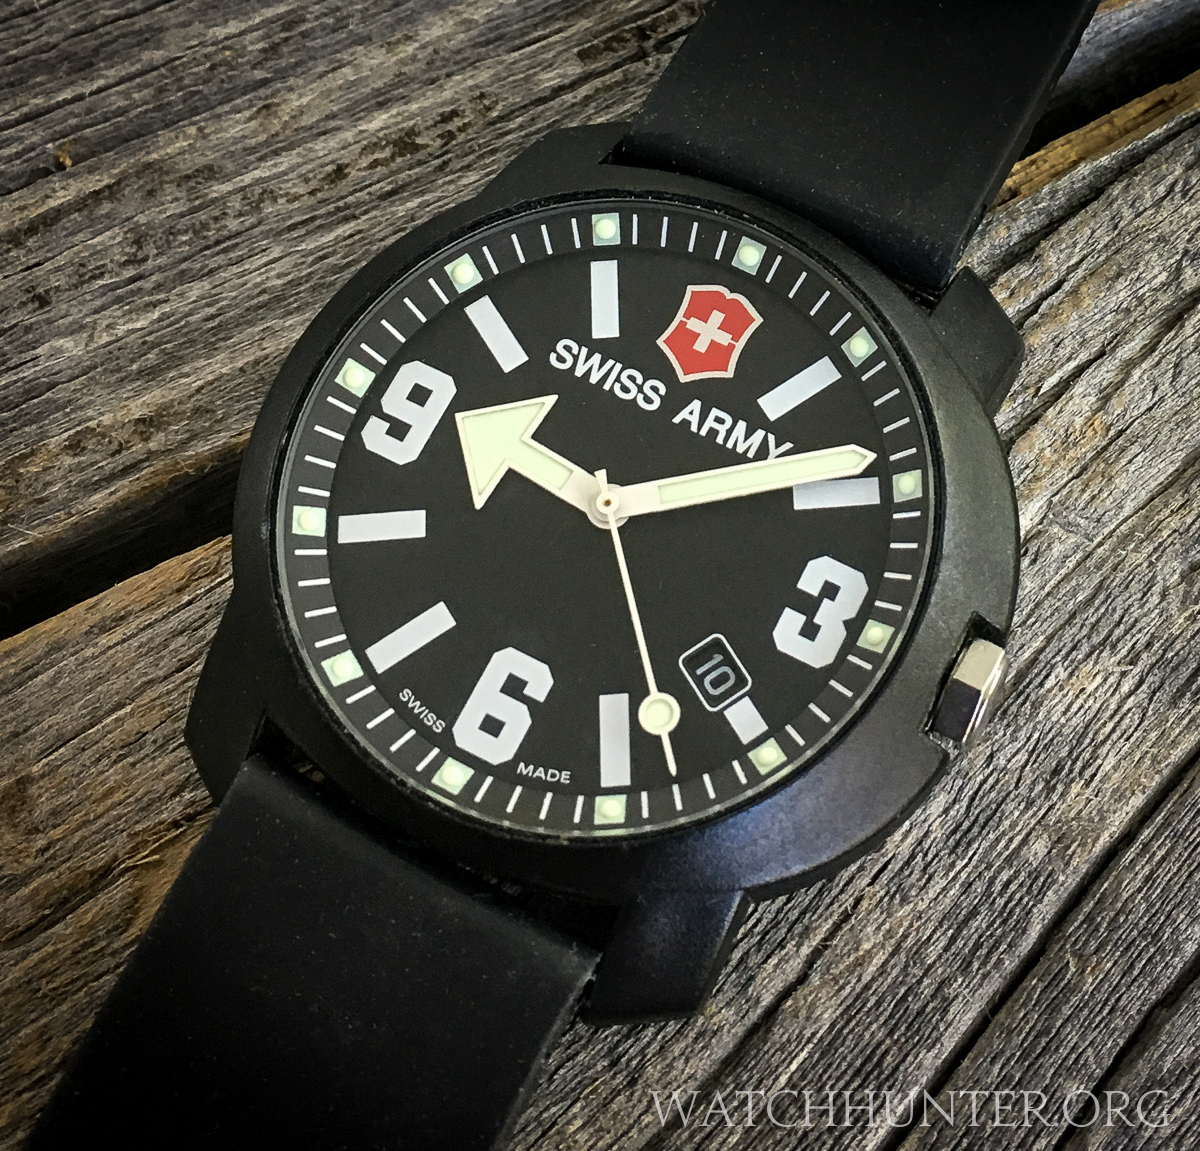 00fb36420e3 MEET THE WATCH  Victorinox Swiss Army Recon Watch with the Giant ...